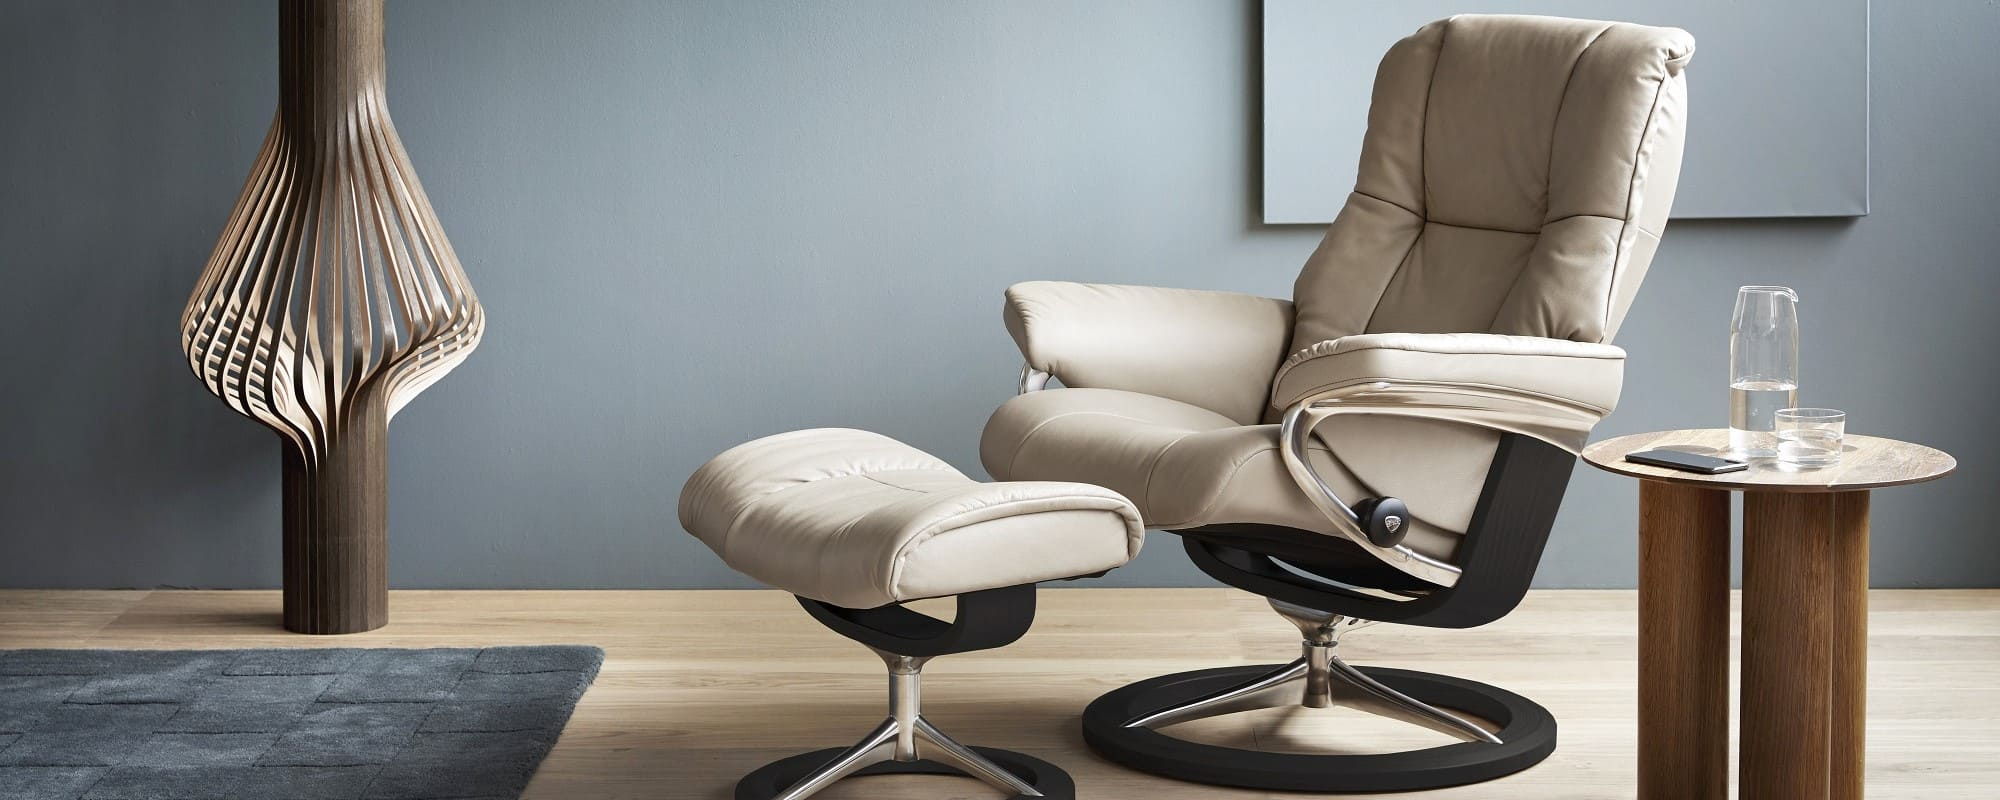 Stressless Mayfair_CoriVanilla_black - 2000-1